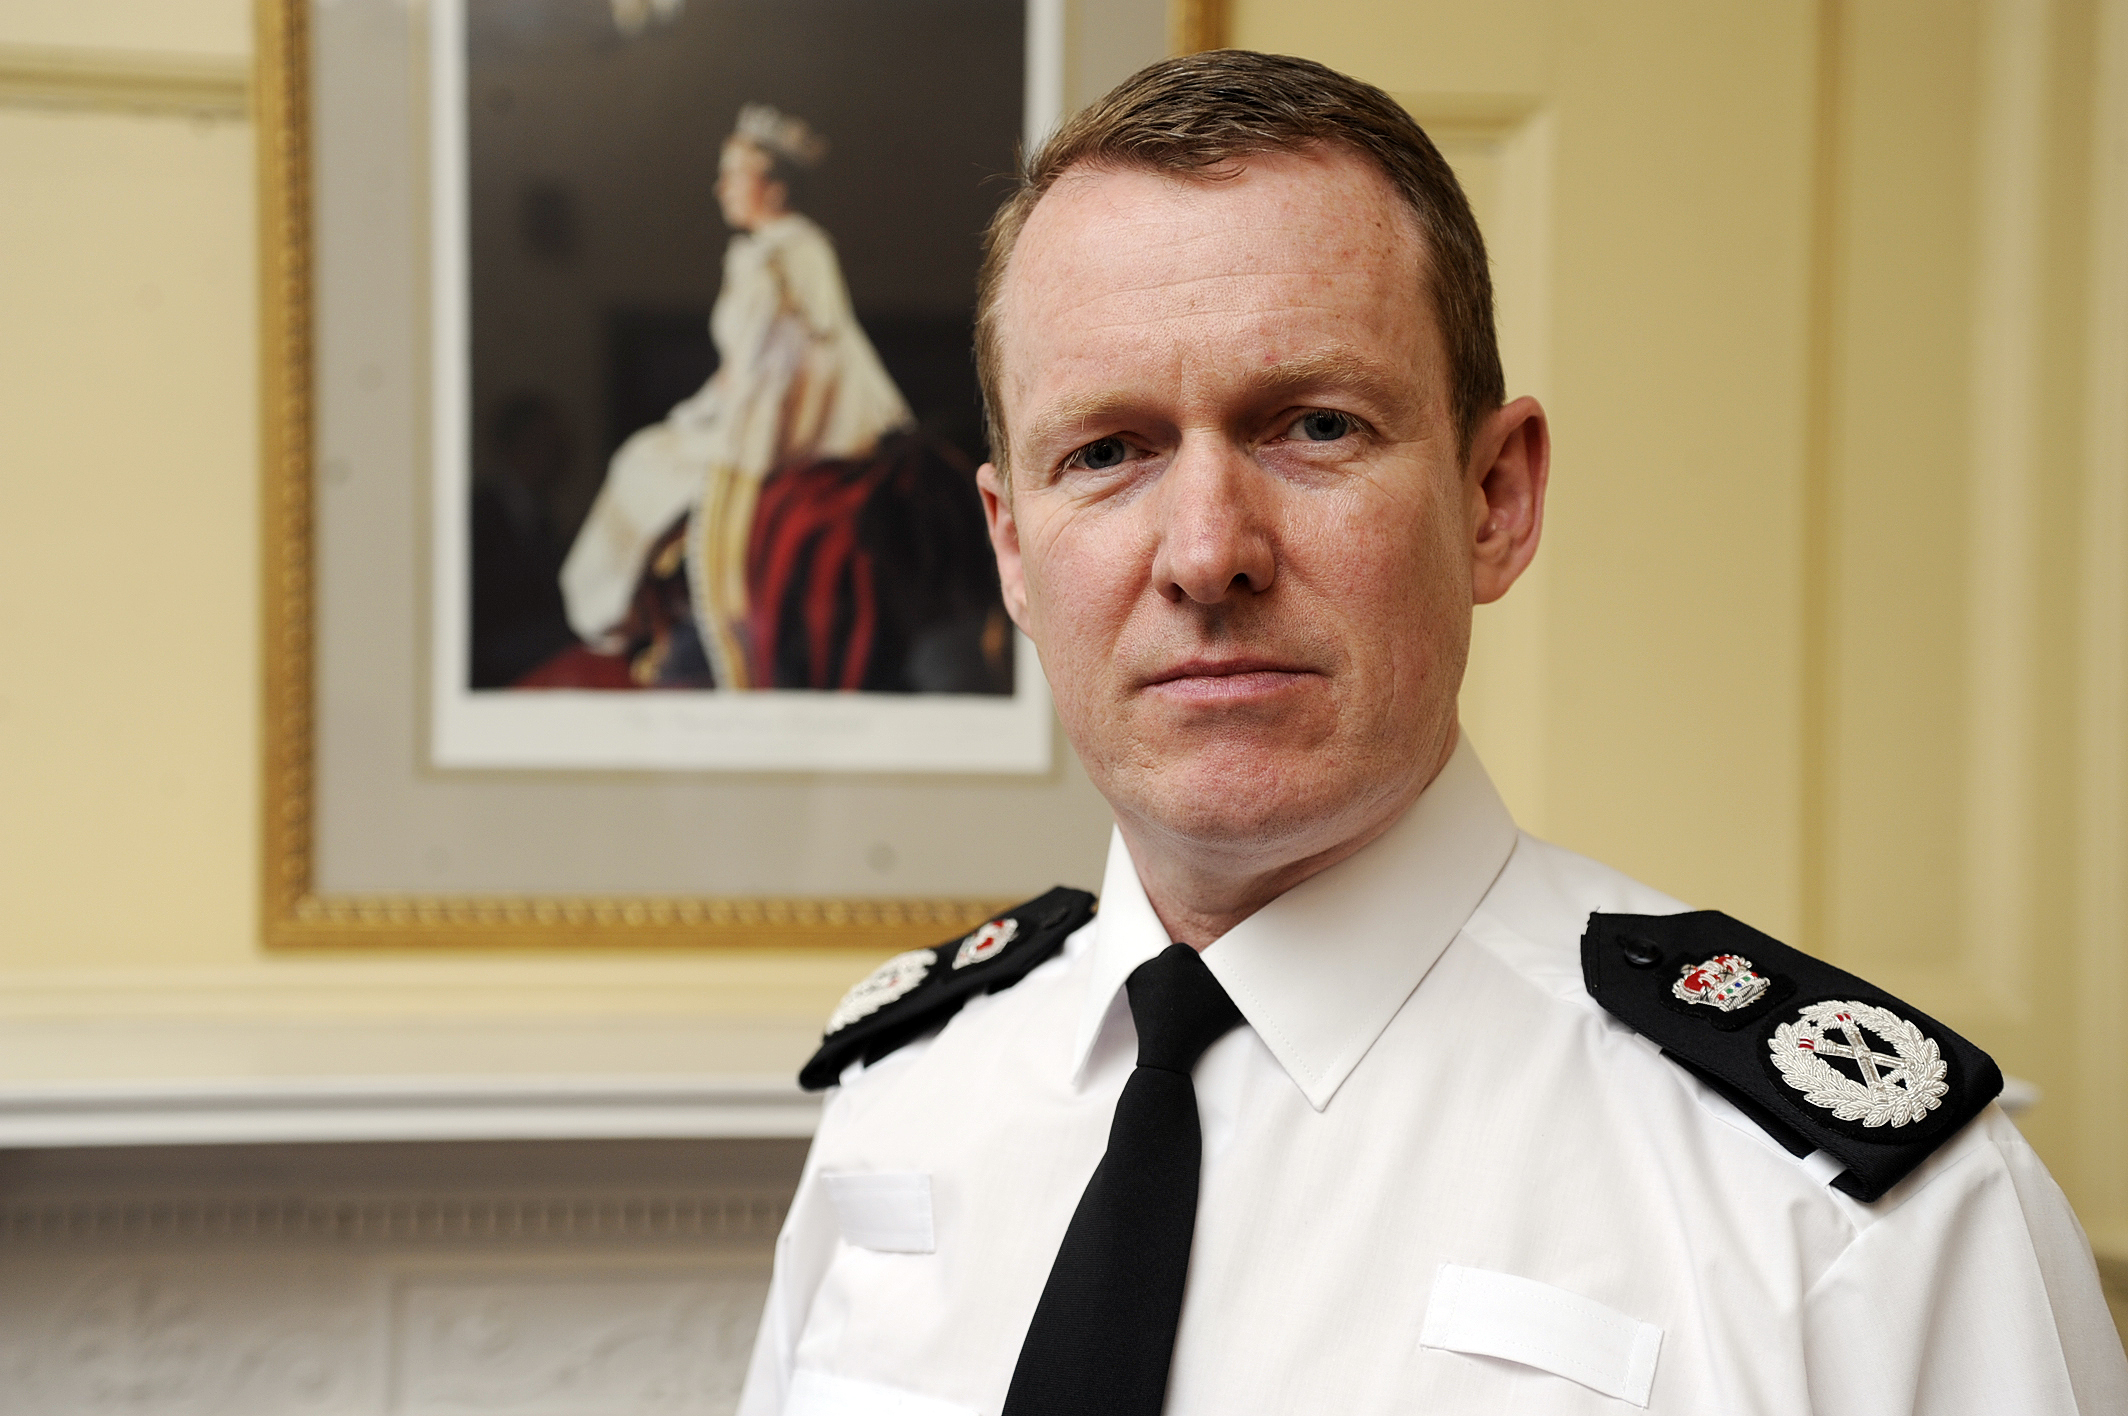 Chief Constable Stephen Kavanagh  has announced he is personally taking control of the force's response to domestic abuse